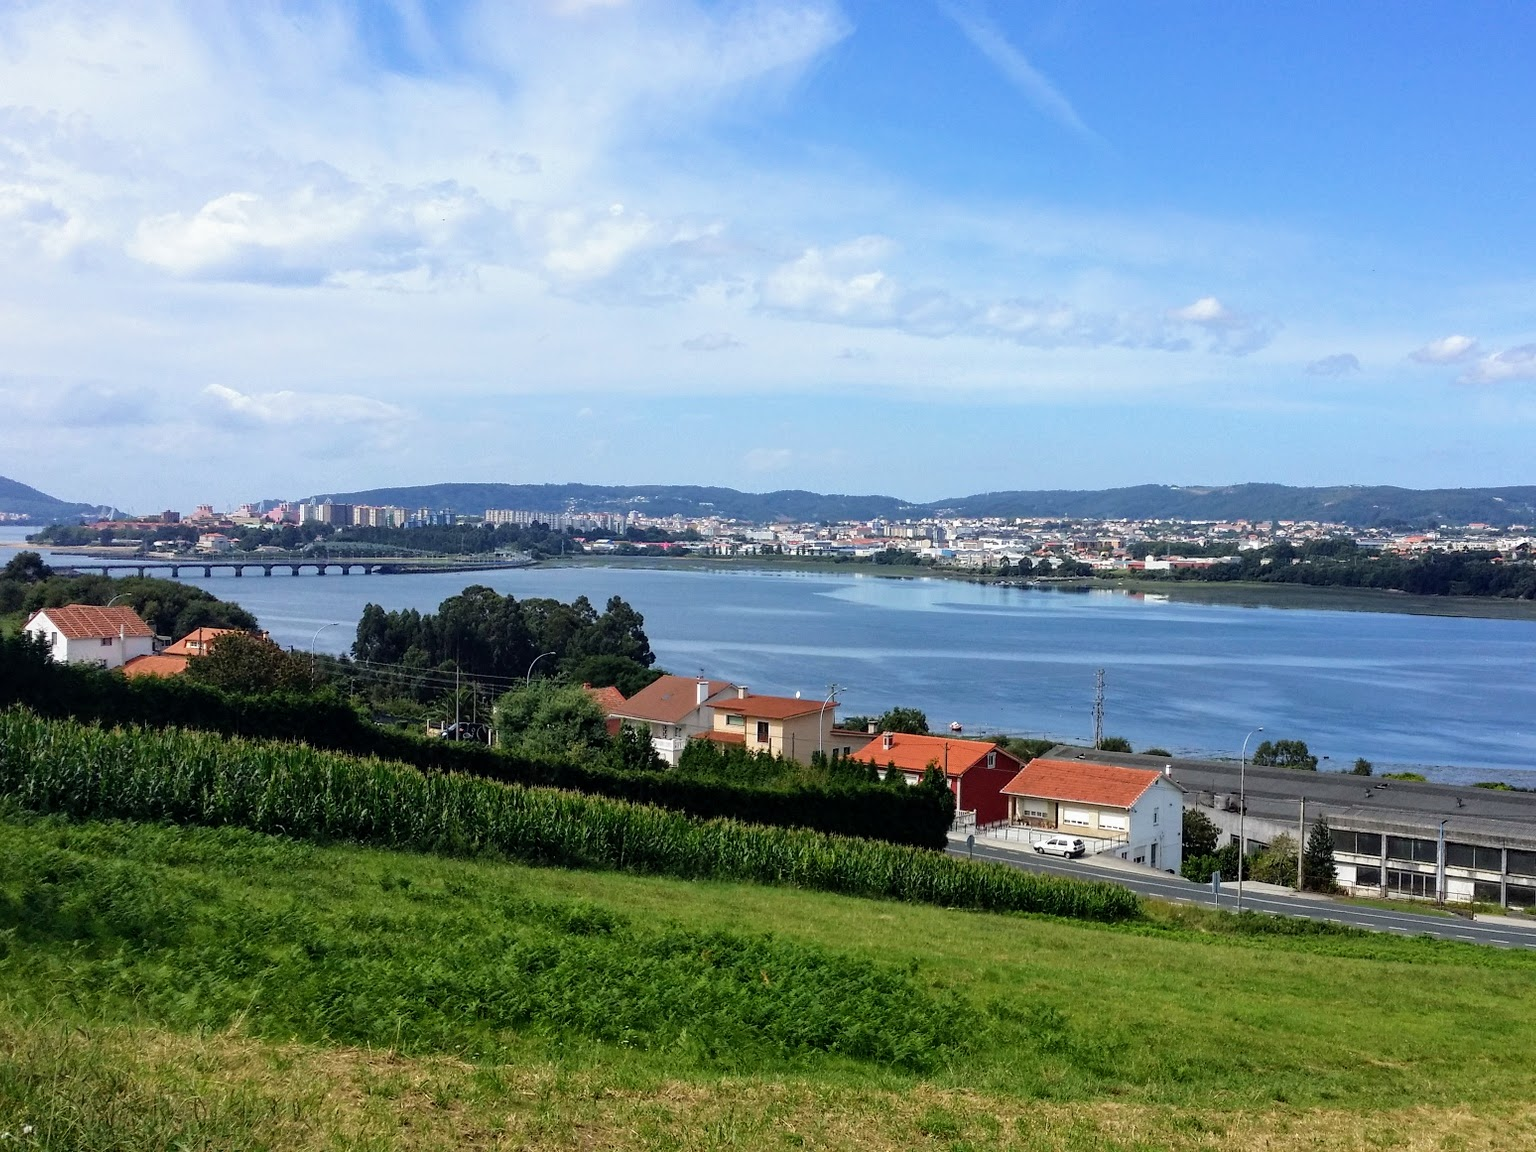 Lofty View of Ferrol Estuary on day two of the Camino Inglés